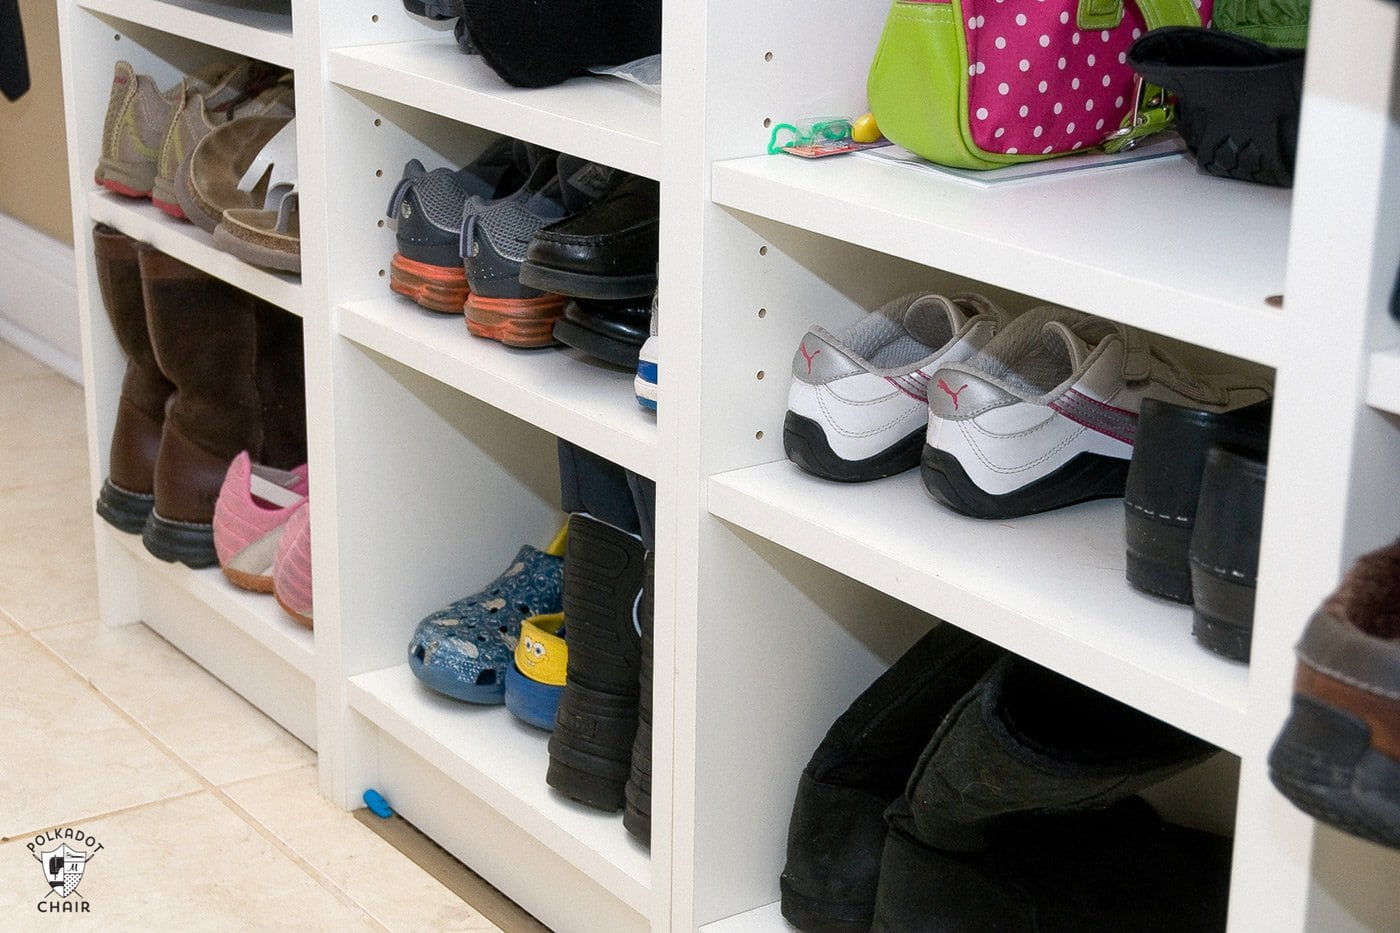 Shoes on shelf